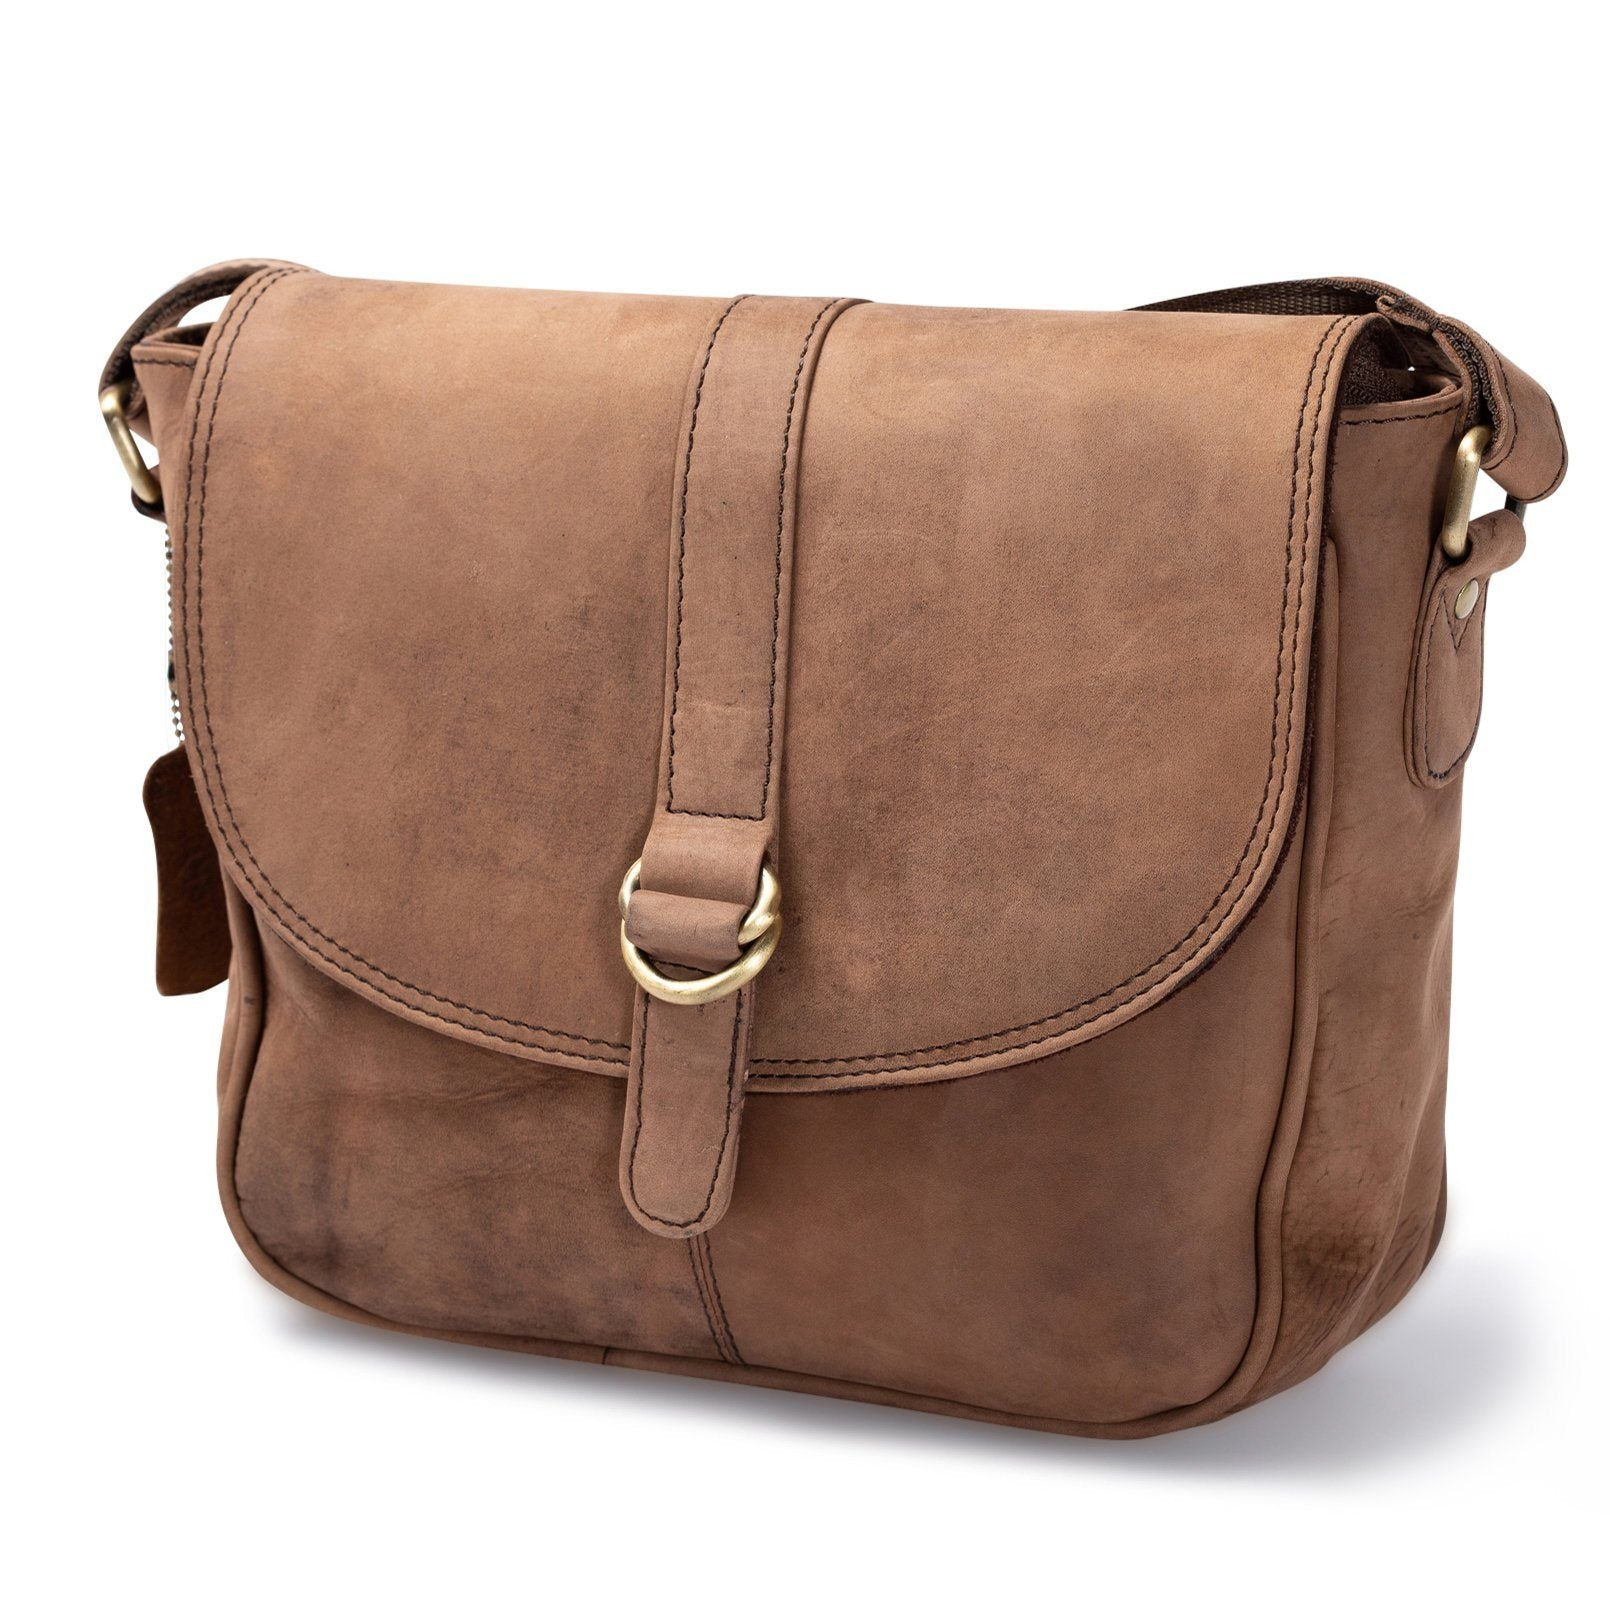 crossbody bag_Vintage Leather Sydney